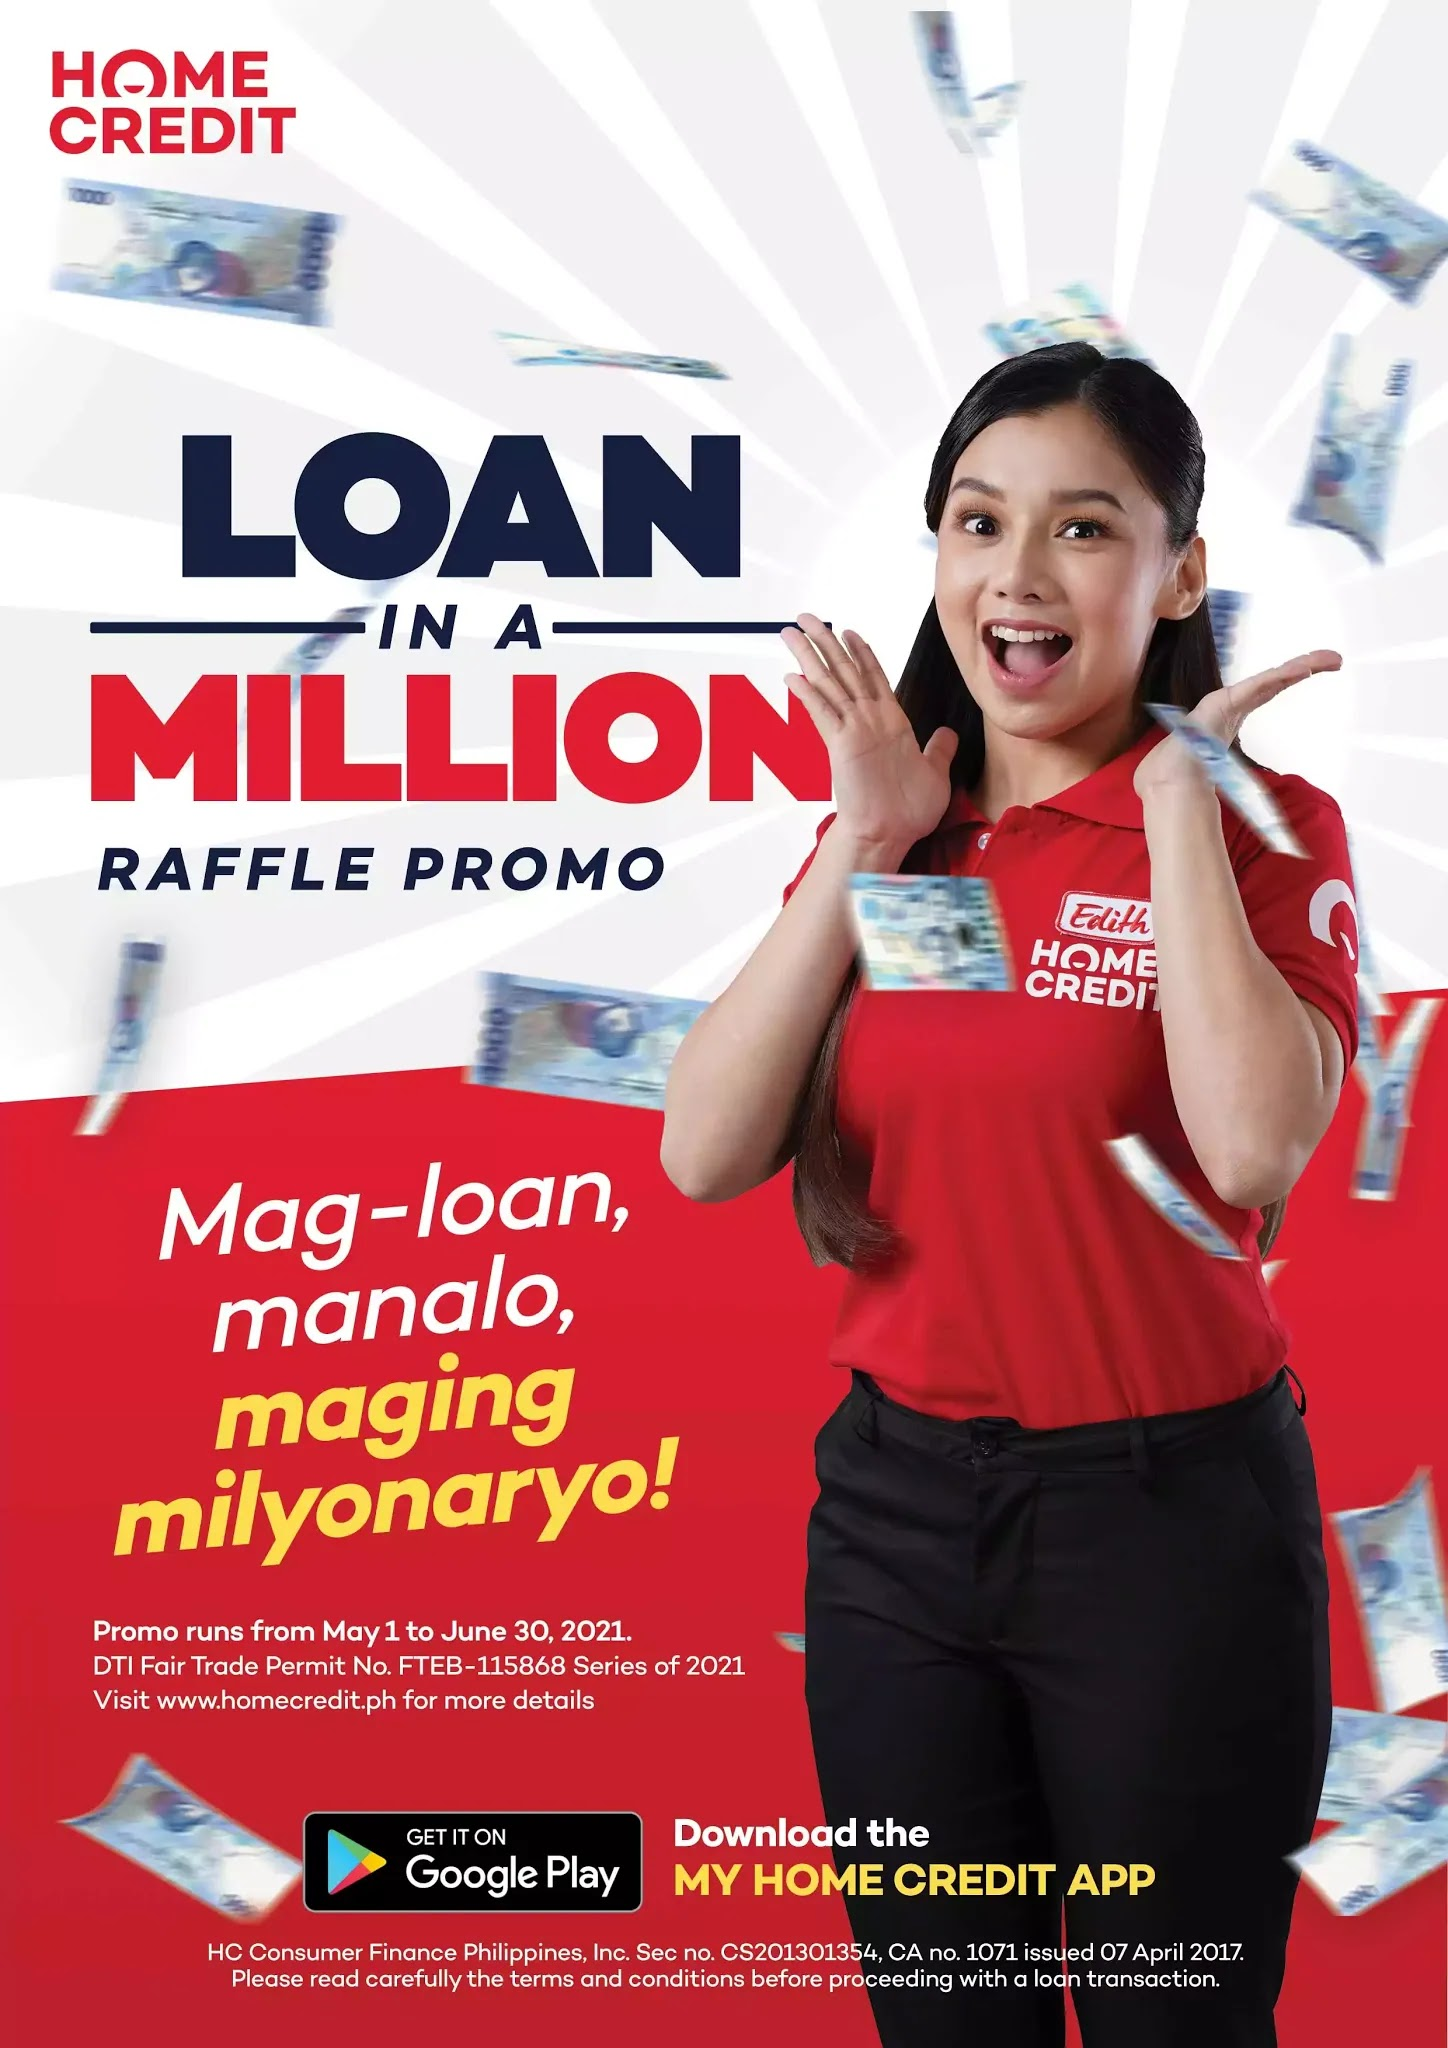 Home Credit's Loan in a Million Raffle Promo